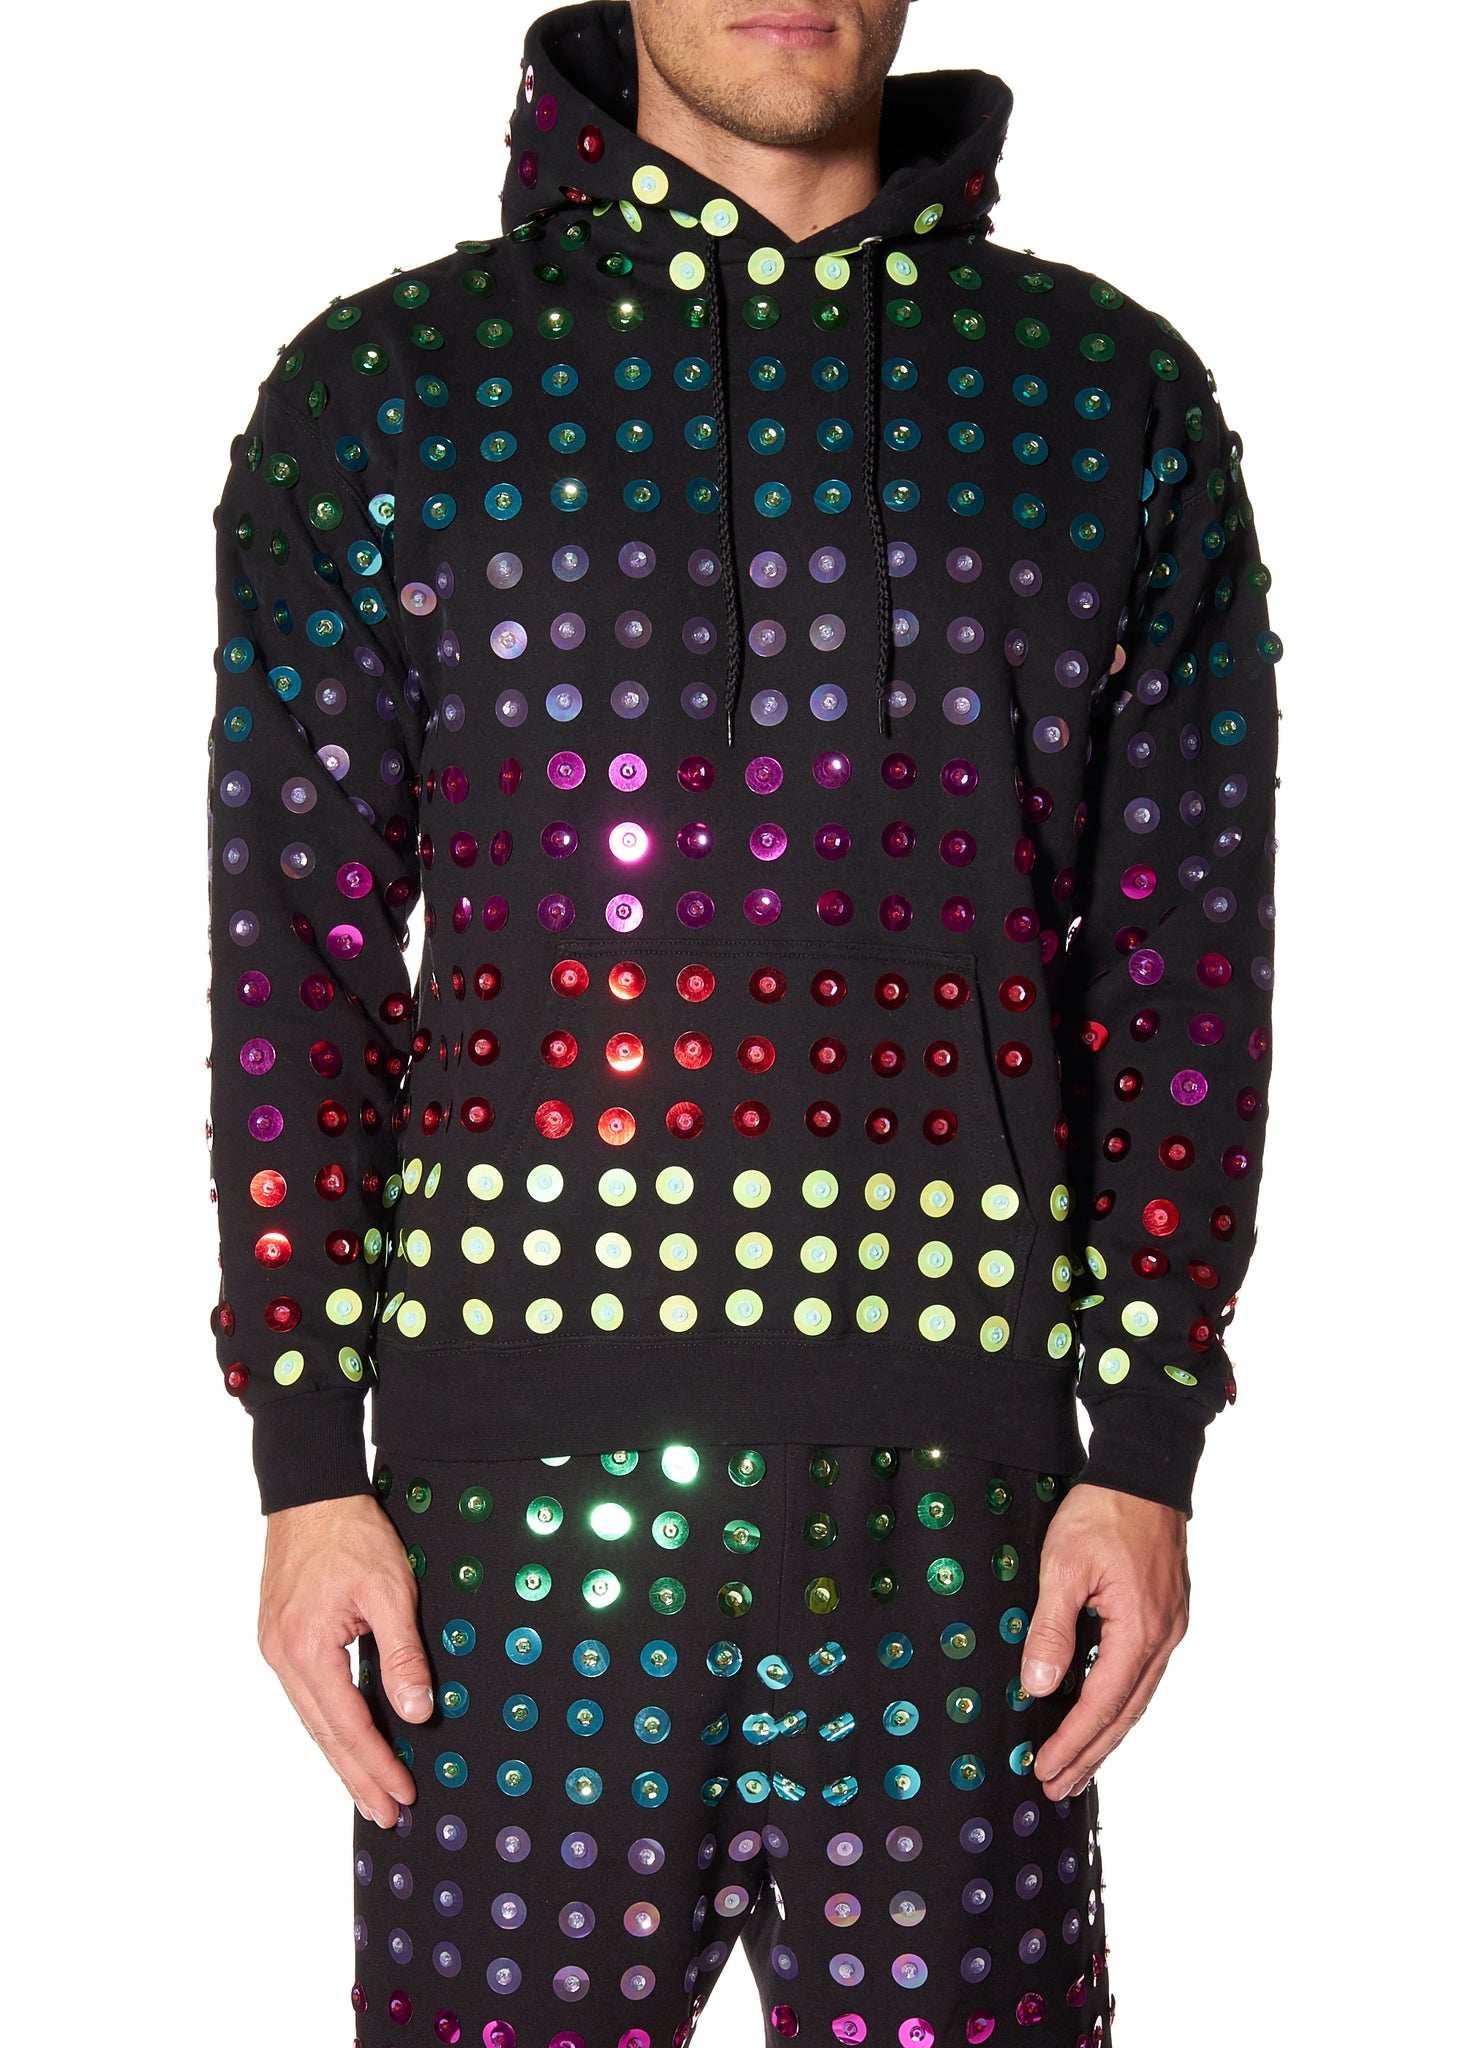 """ELECTRIC AVENUE"" HOODED SWEATSHIRT - Men's Tops - Libertine"